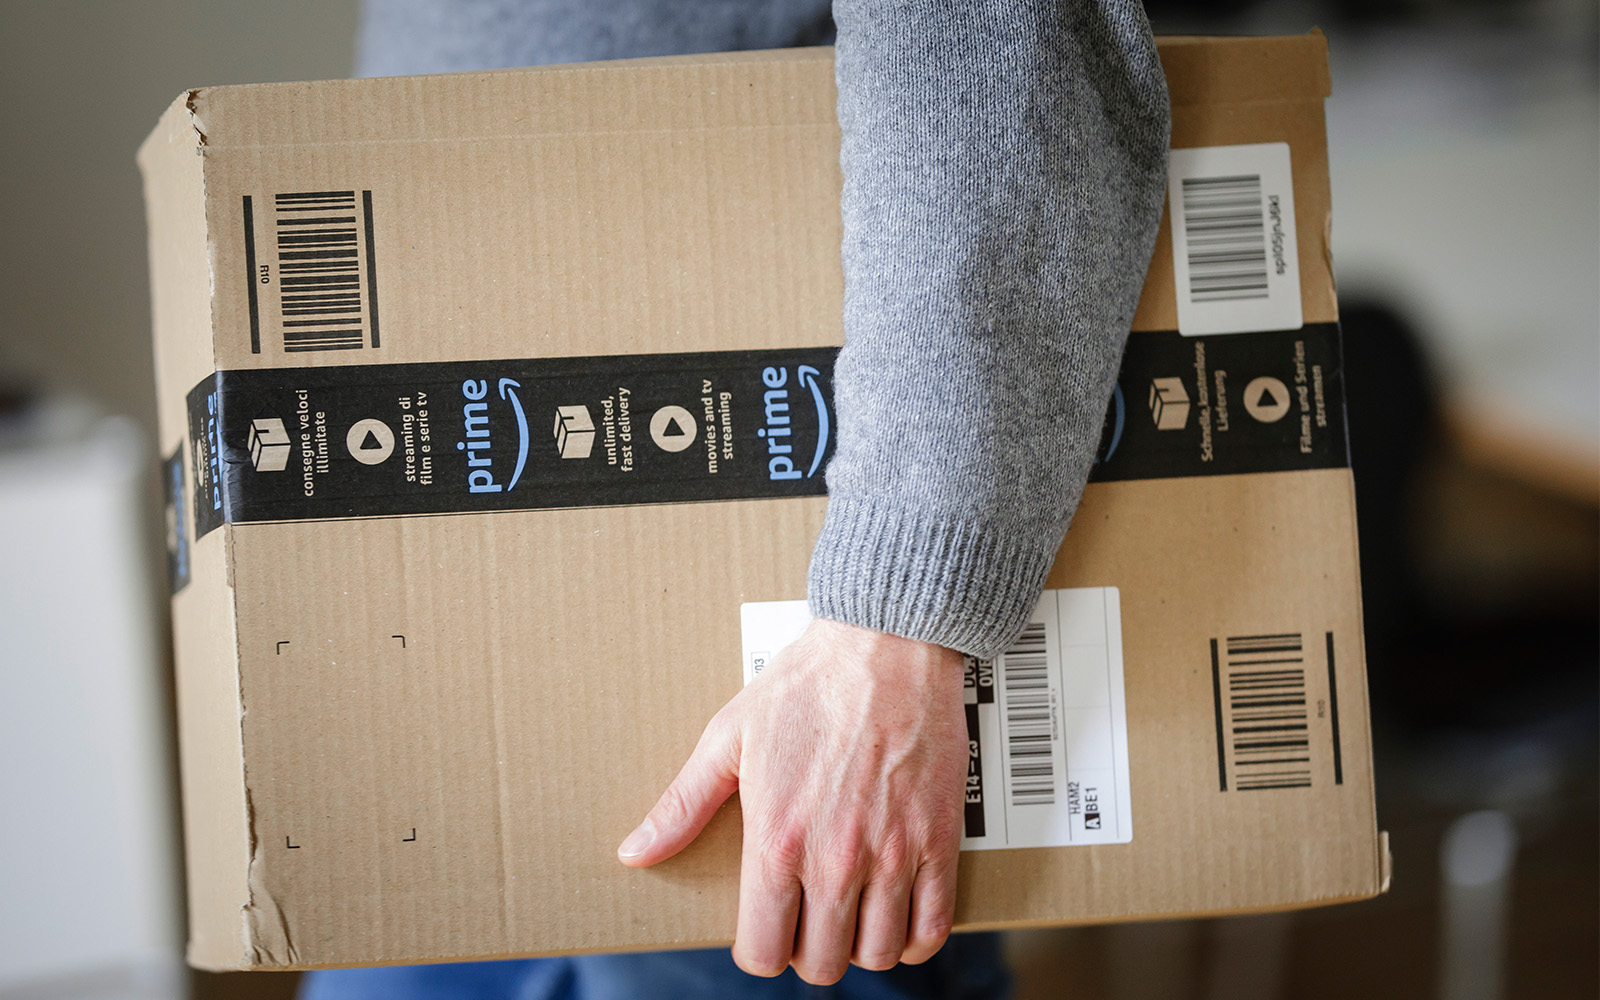 Amazon Prime Day 2019: When It Starts and How to Score the Best Deals